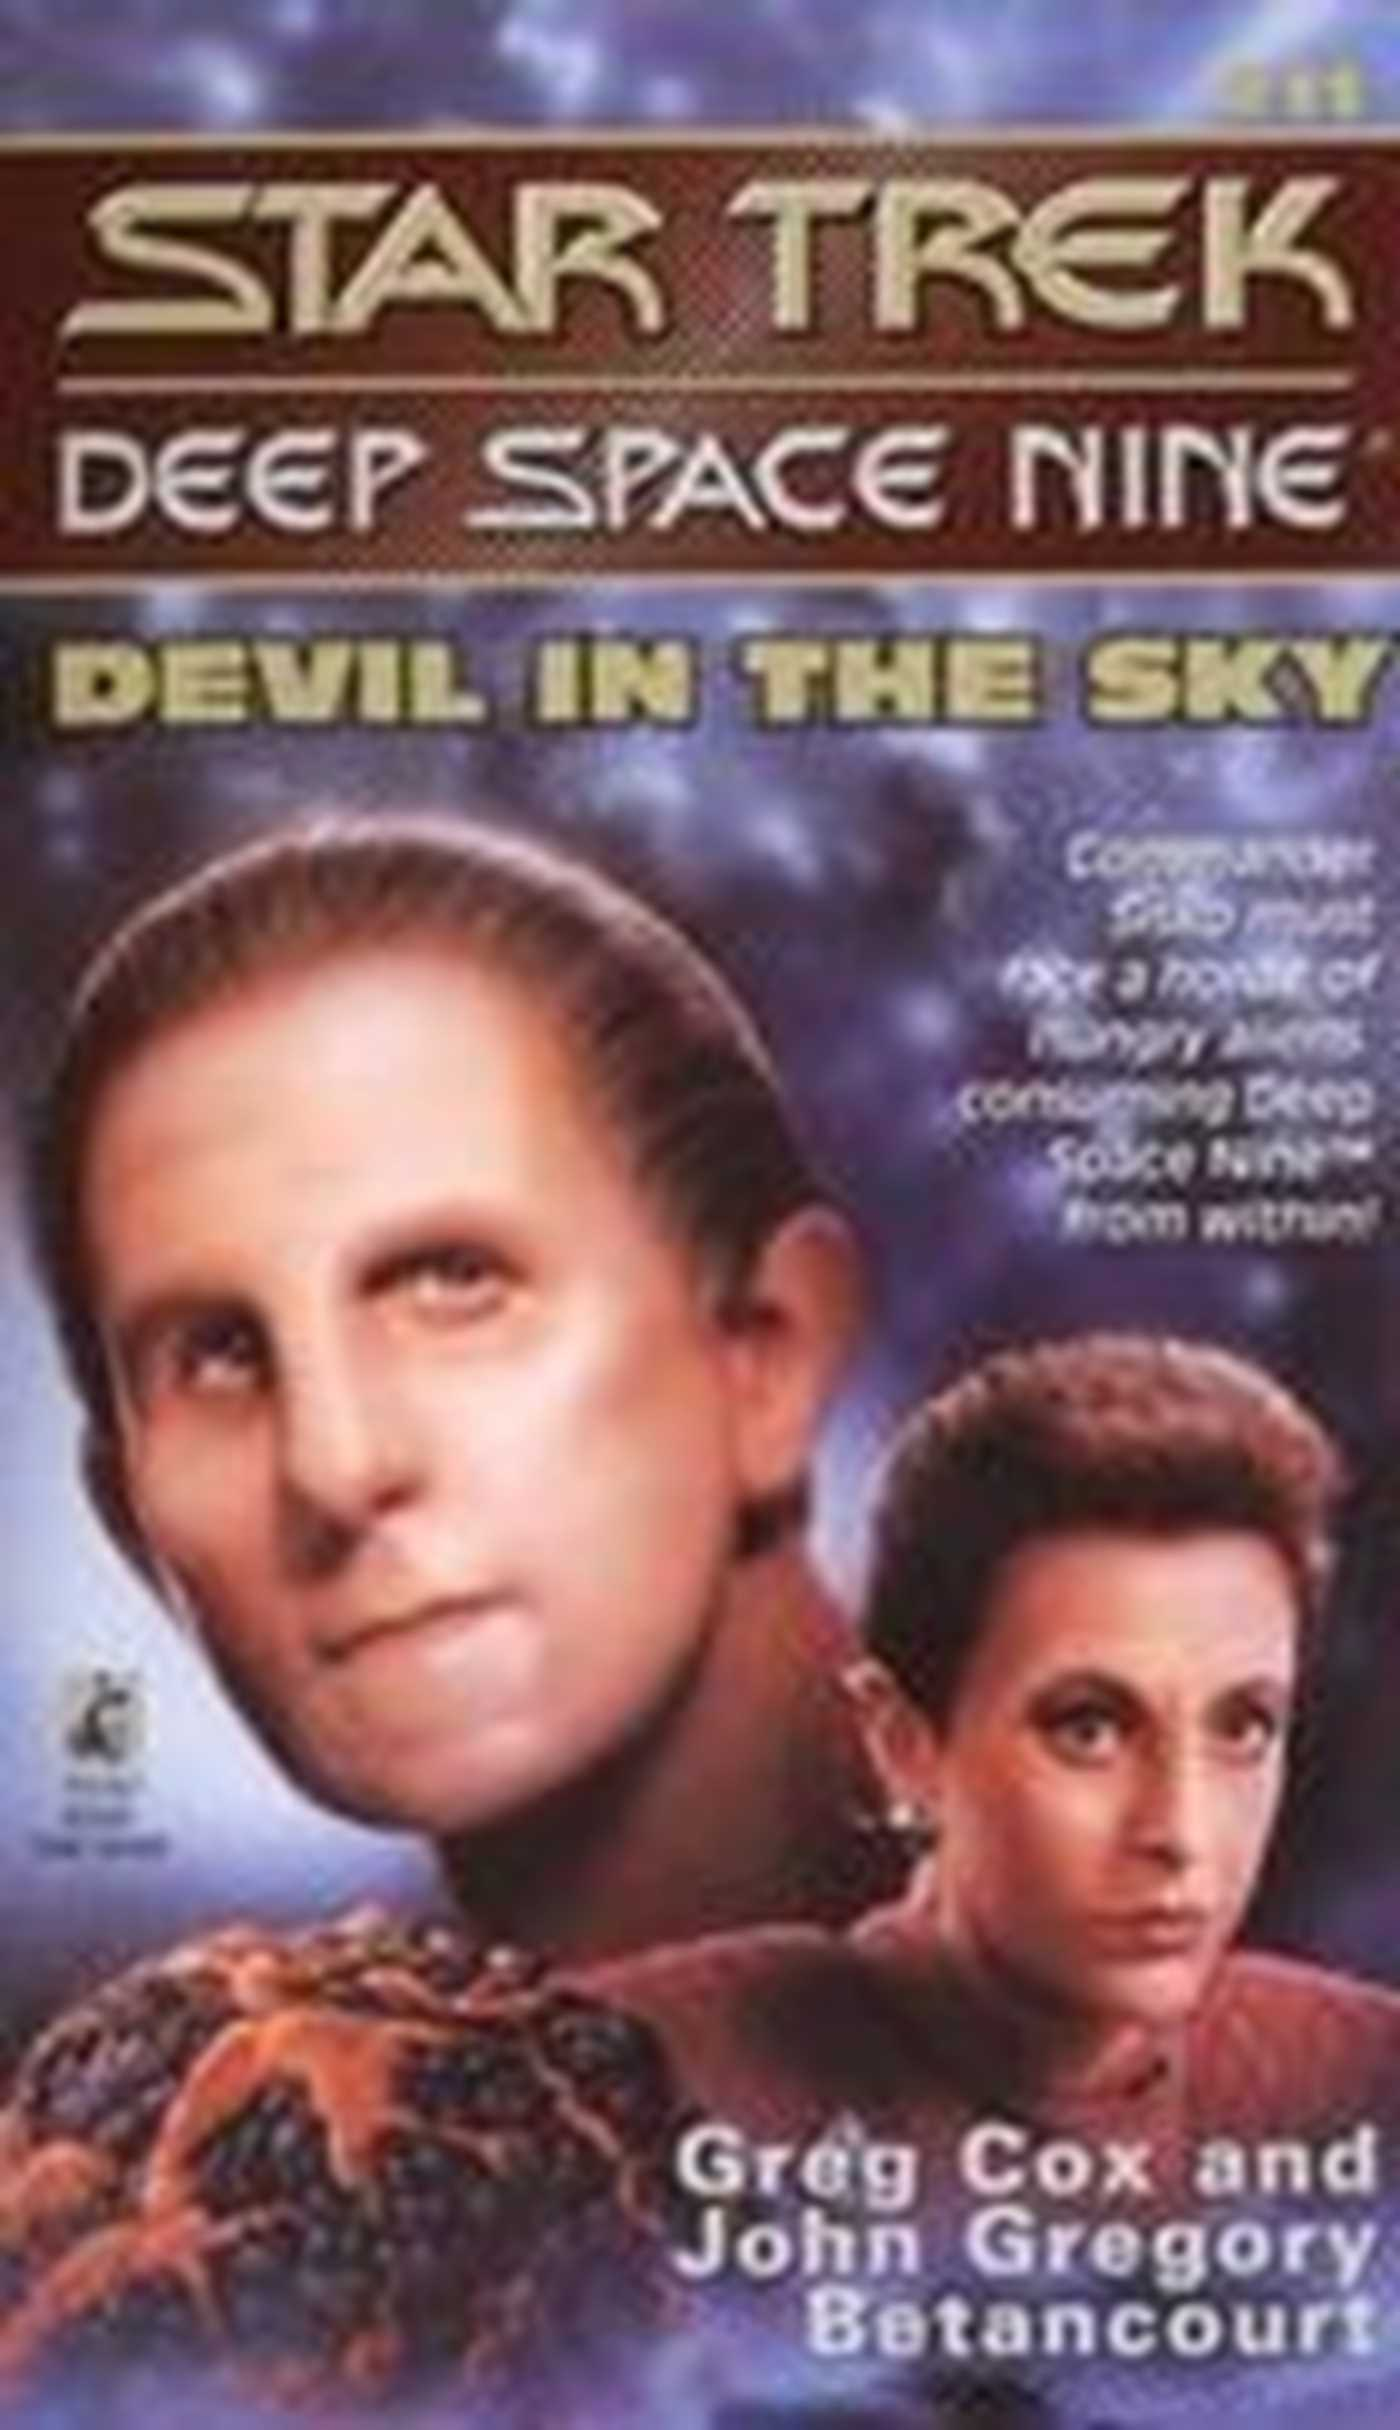 Devil in the sky 9780743420426 hr